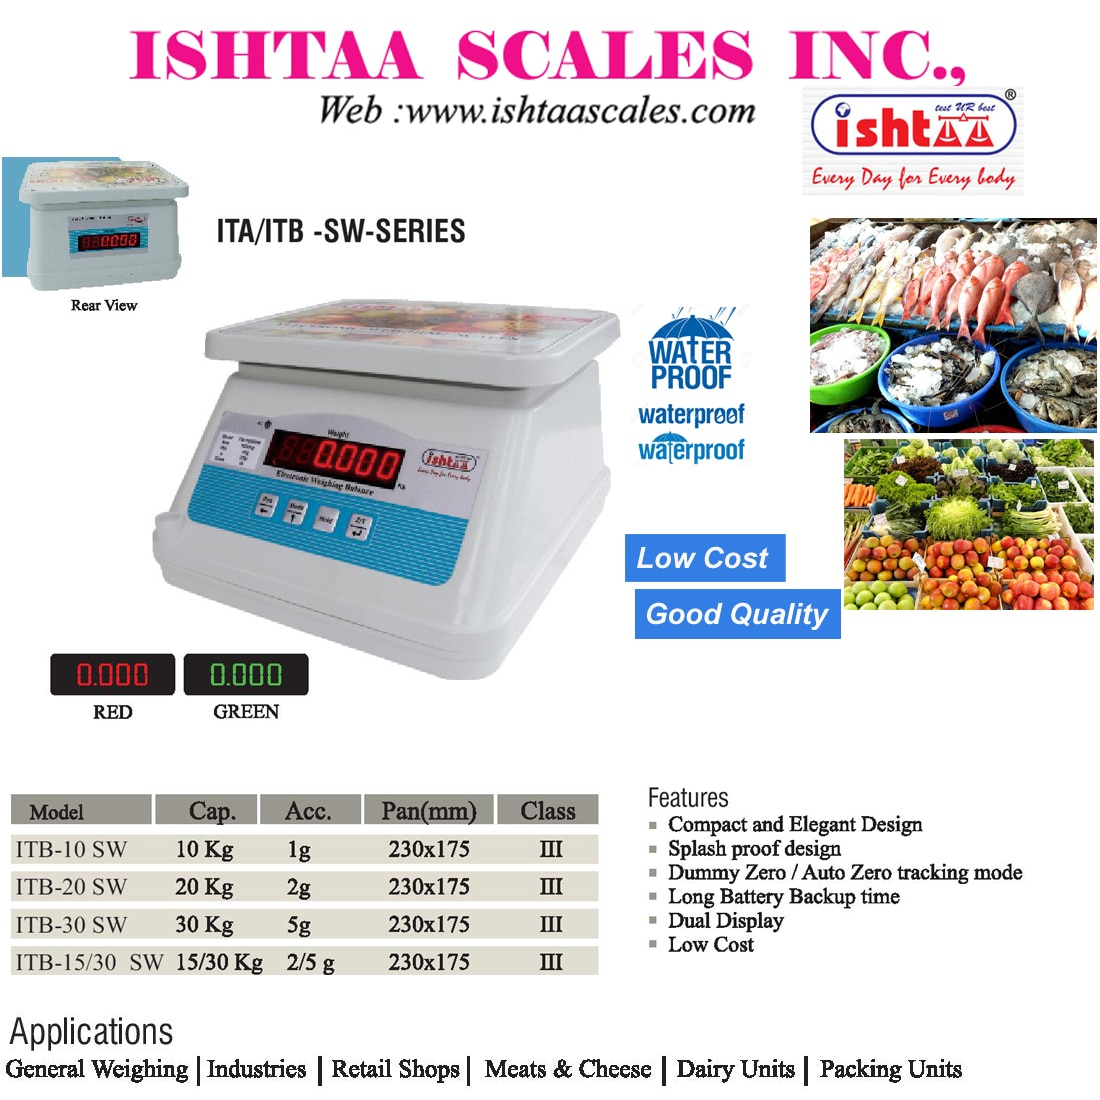 Best Waterproof Weighing Scale.. http://goo.gl/K6zB9r Ishtaa – SW / AW Series Waterproof Scales Most Economic Weighing Scale High Accuracy & 100% Performance Oriented... With long Lasting Battery Backup With Dual Display  Used in all Trade Places as Vegetable Market Weighing Scale Retail Weighing Scale Dairy weighing Scale Meats Weighing Scale  Fish Market Weighing Scale Packing Units weighing scale Fruits Weighing Scale Easily Portable Weighing Scale Piece Counting & Parts Counting Scale Highly Customer Friendly & Compact in Design. To Buy Now,  Call: 09843016028 Mail: online@ishtaascales.com